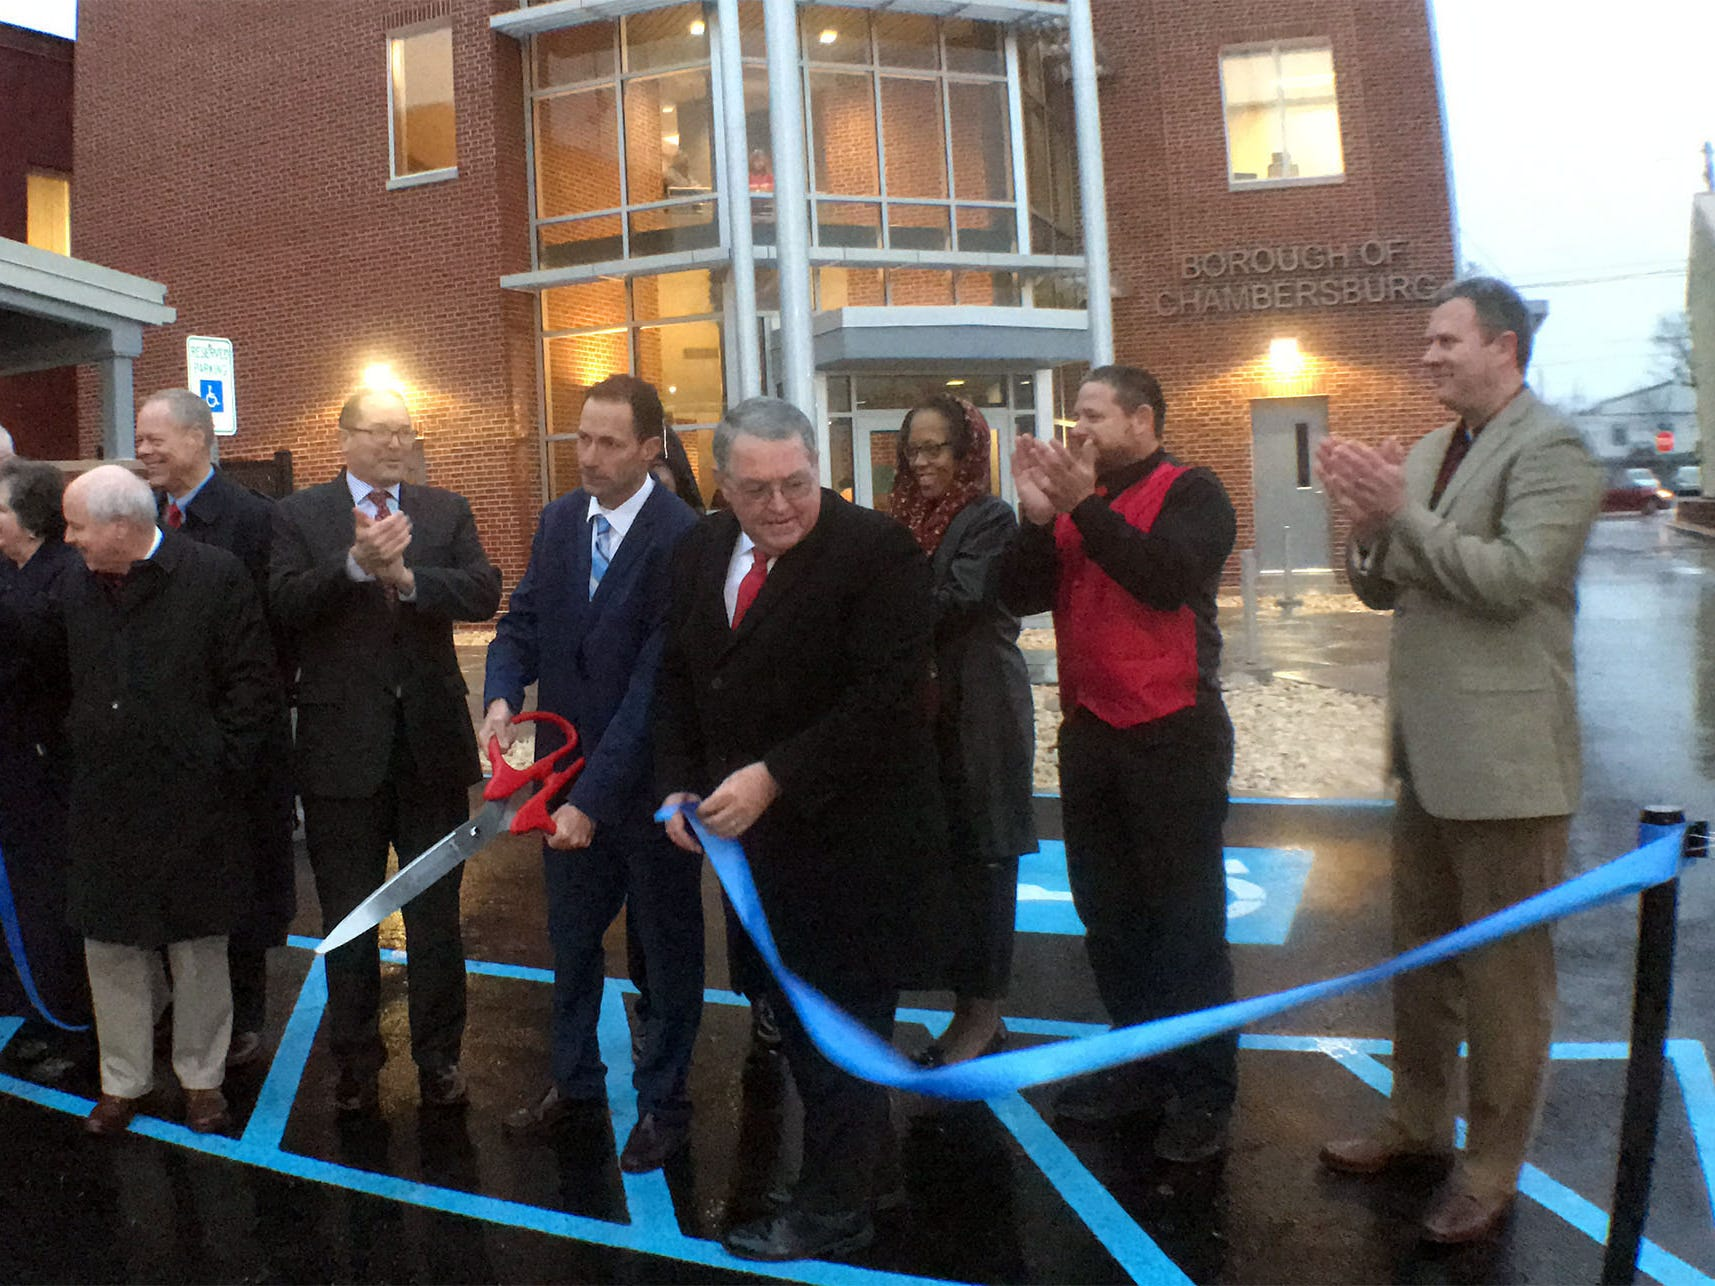 A ribboncutting ceremony was held Thursday, December 20, 2018 at Chambersburg Borough Hall new addition.